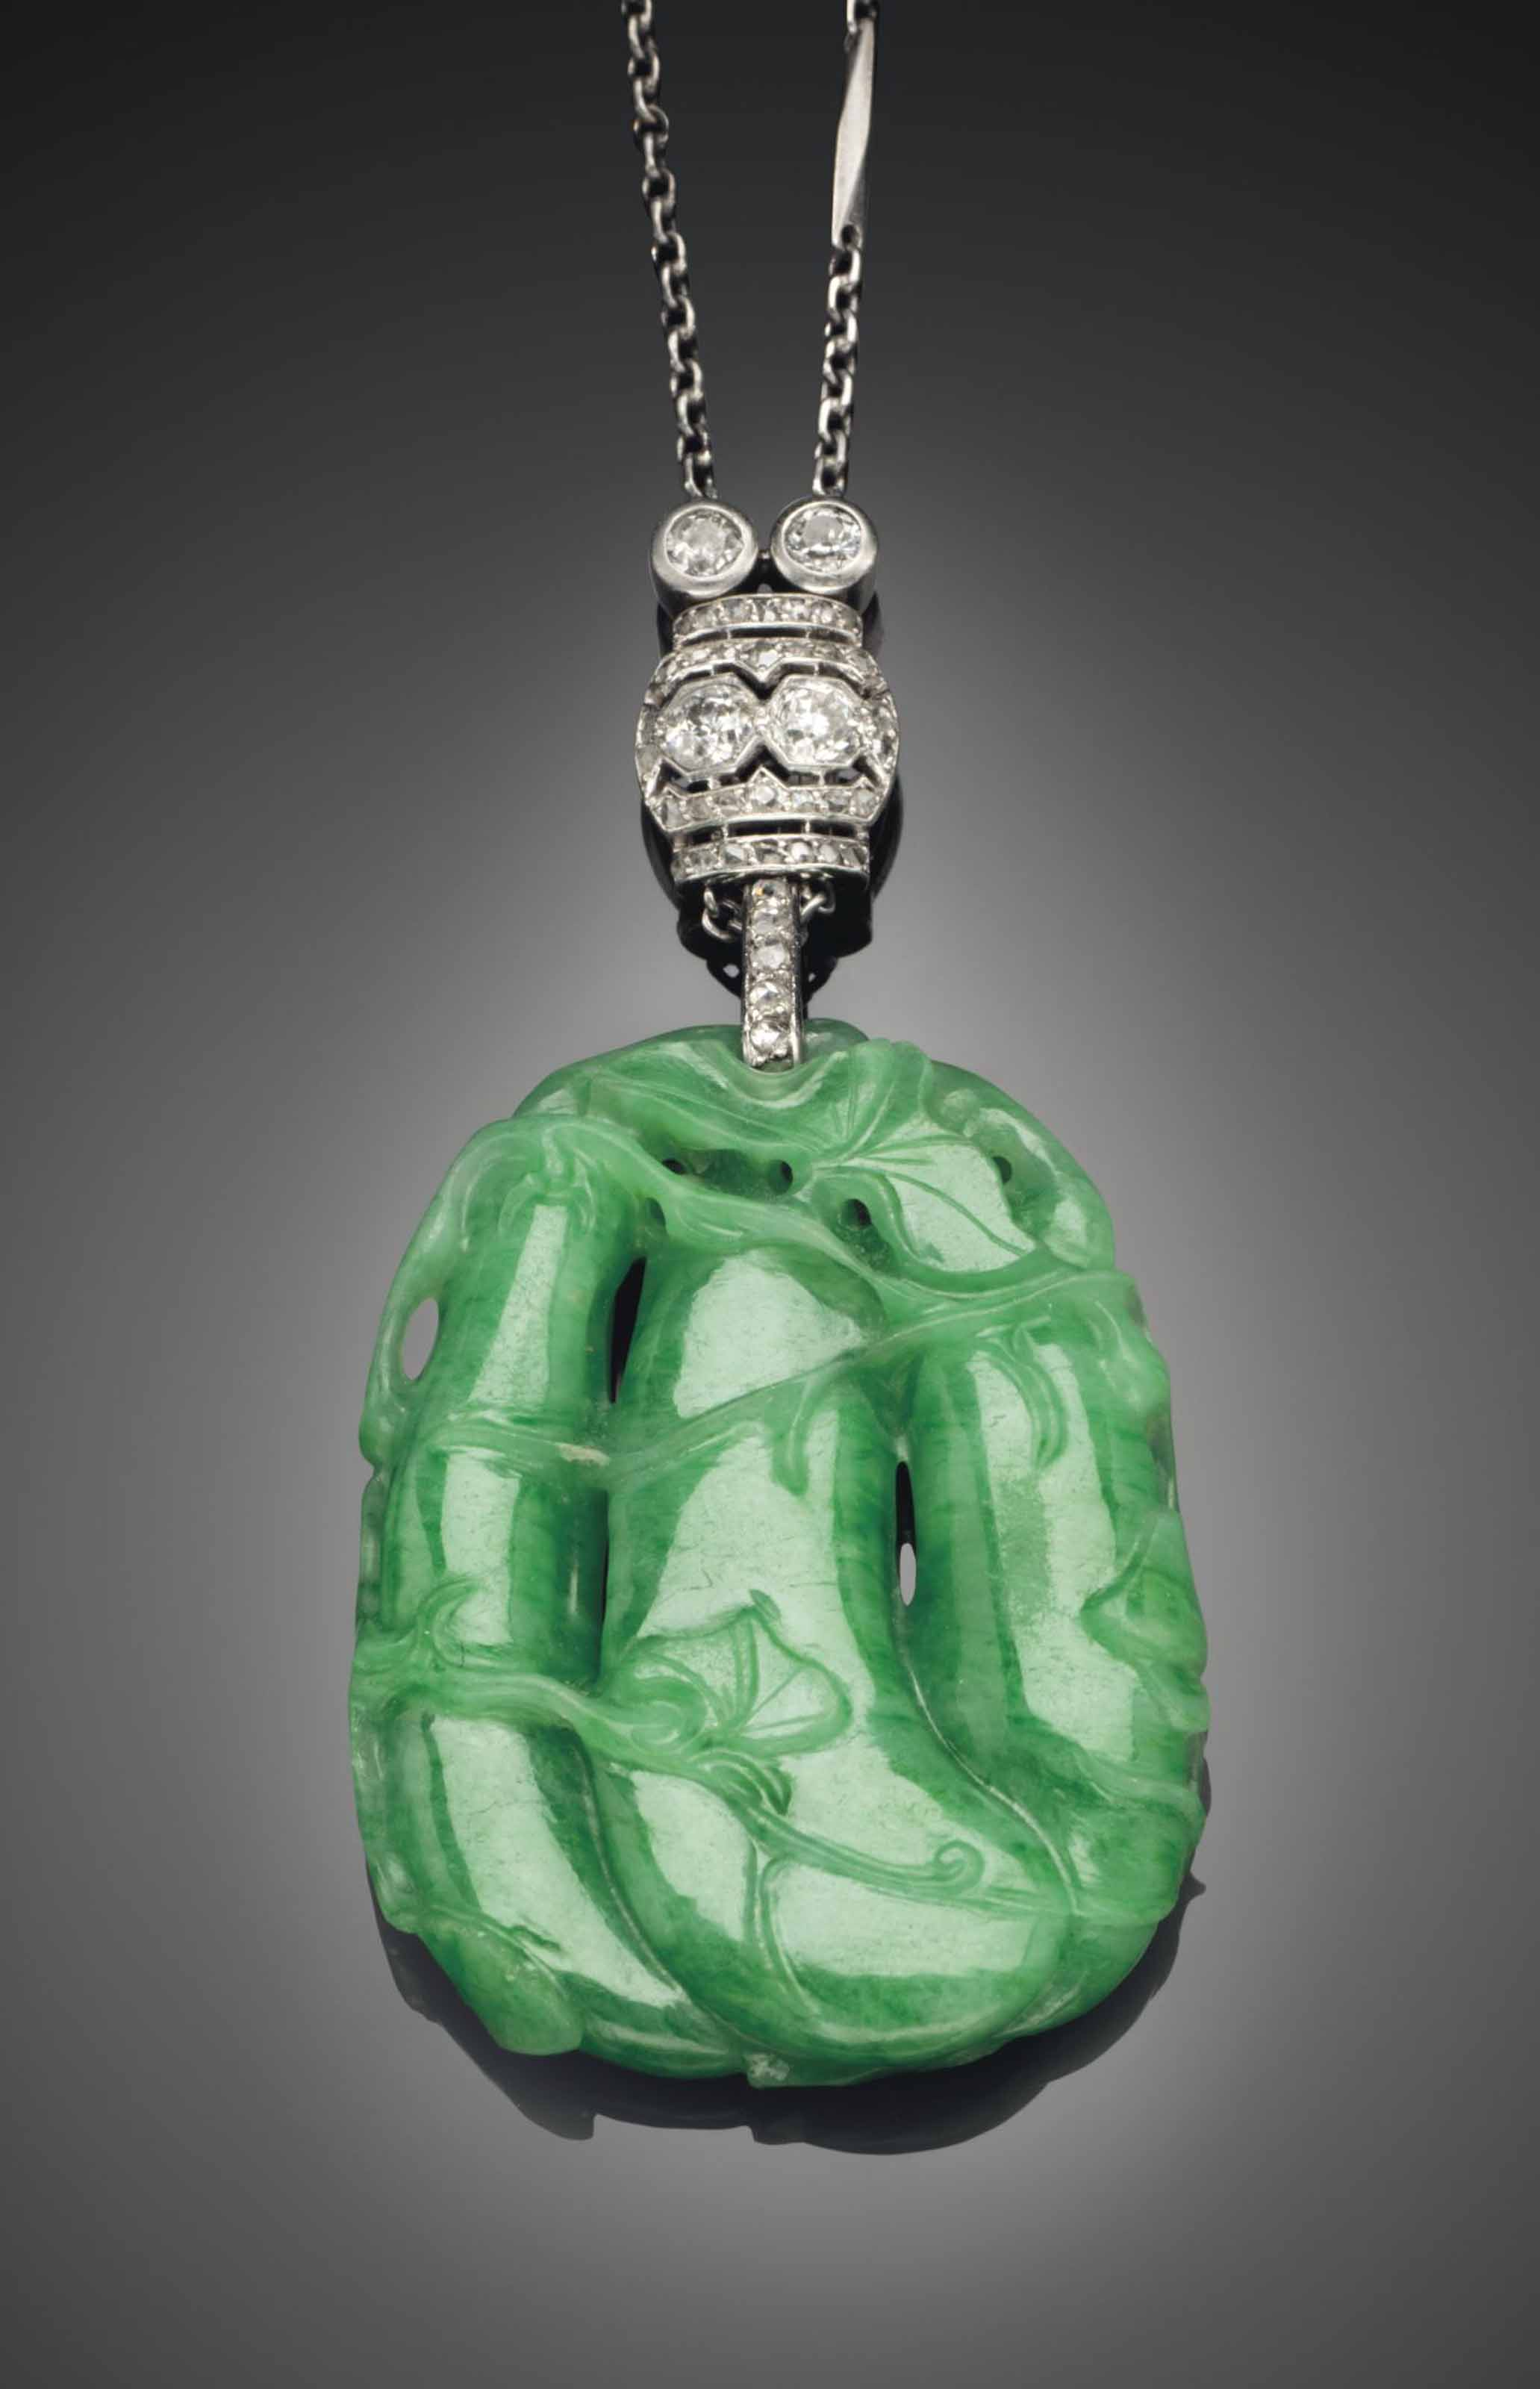 A BRIGHT GREEN JADEITE PENDANT